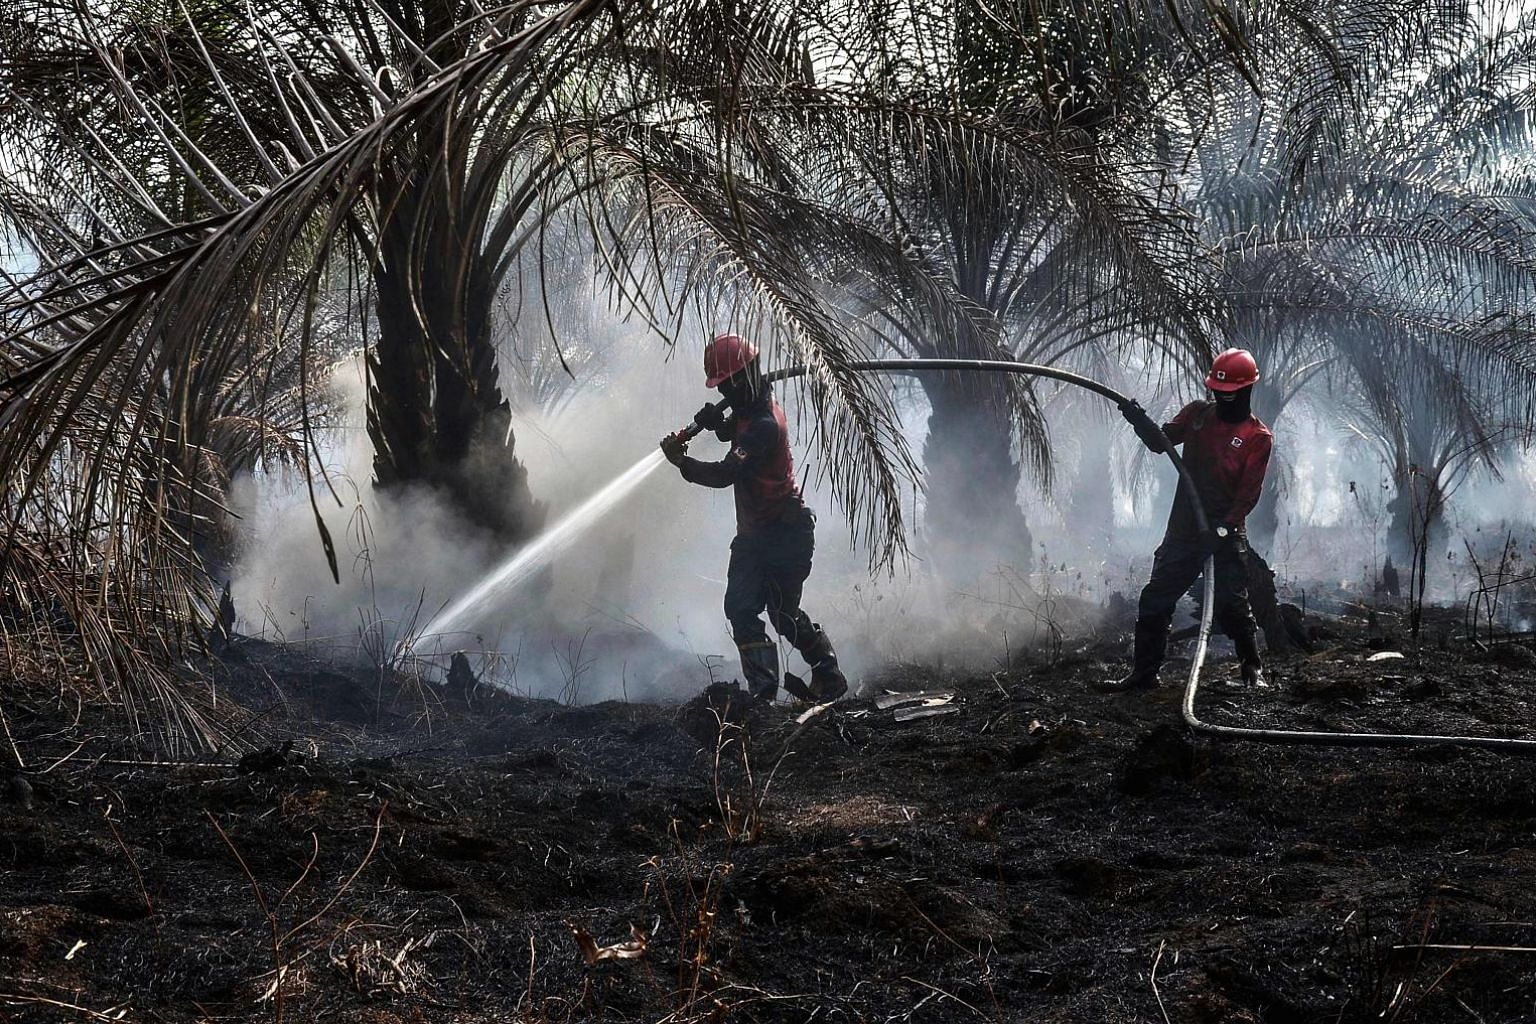 Forest fire task force officers trying to extinguish a peatland fire at a palm oil plantation in Pekanbaru in Indonesia's Riau province on Sept 4. PHOTO: AGENCE FRANCE-PRESSE